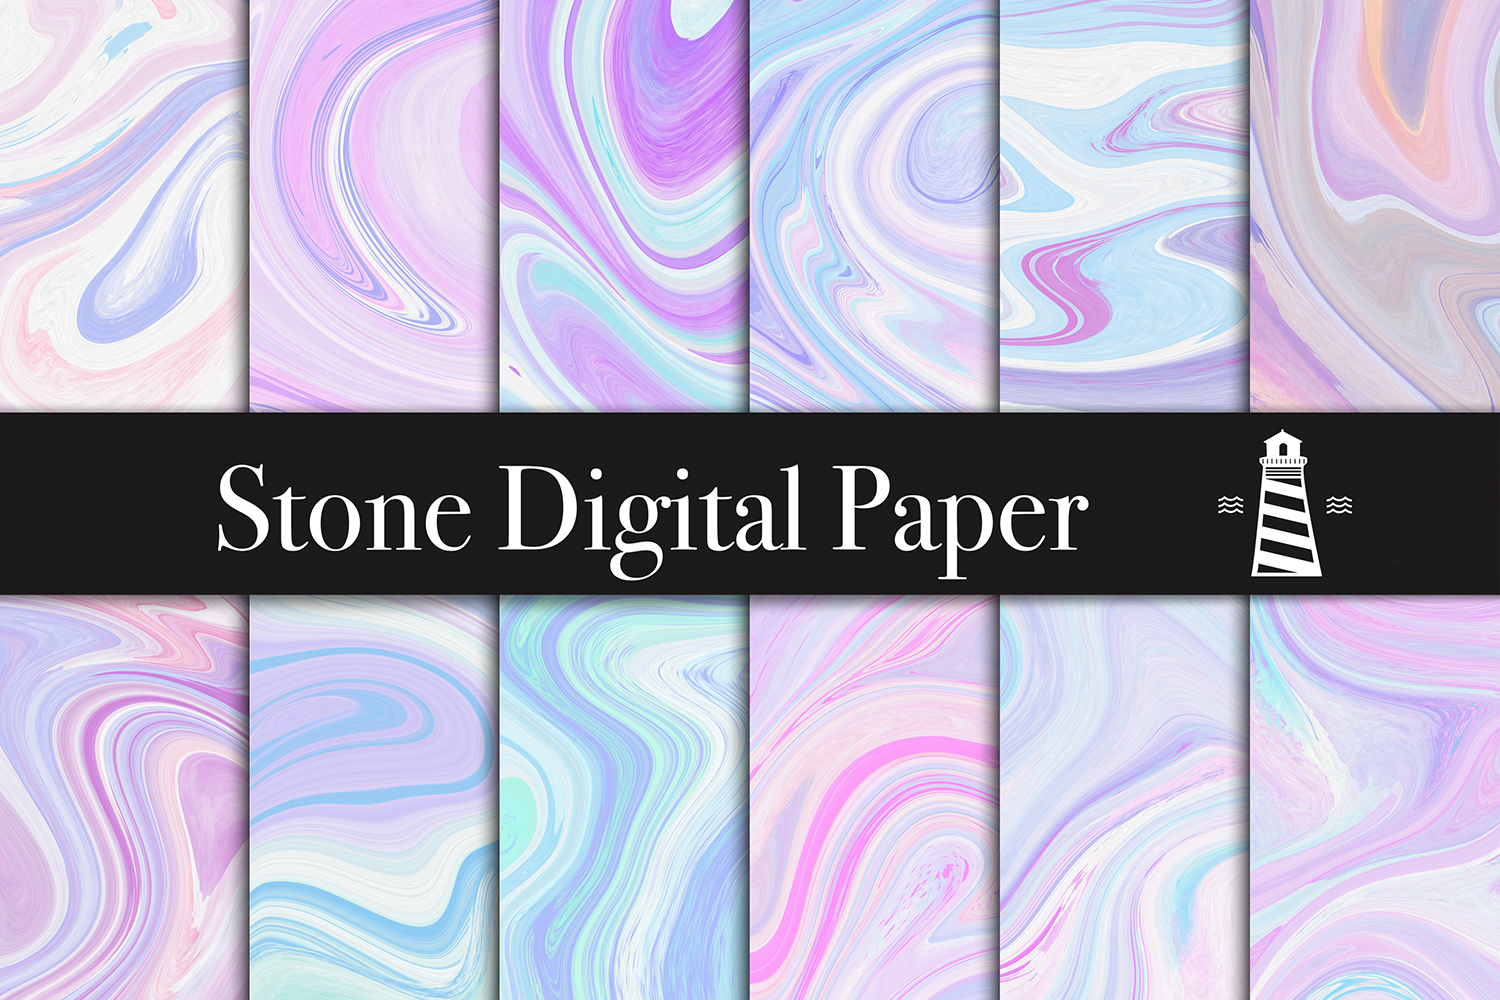 Agate Textures - Wedding Backgrounds example image 4